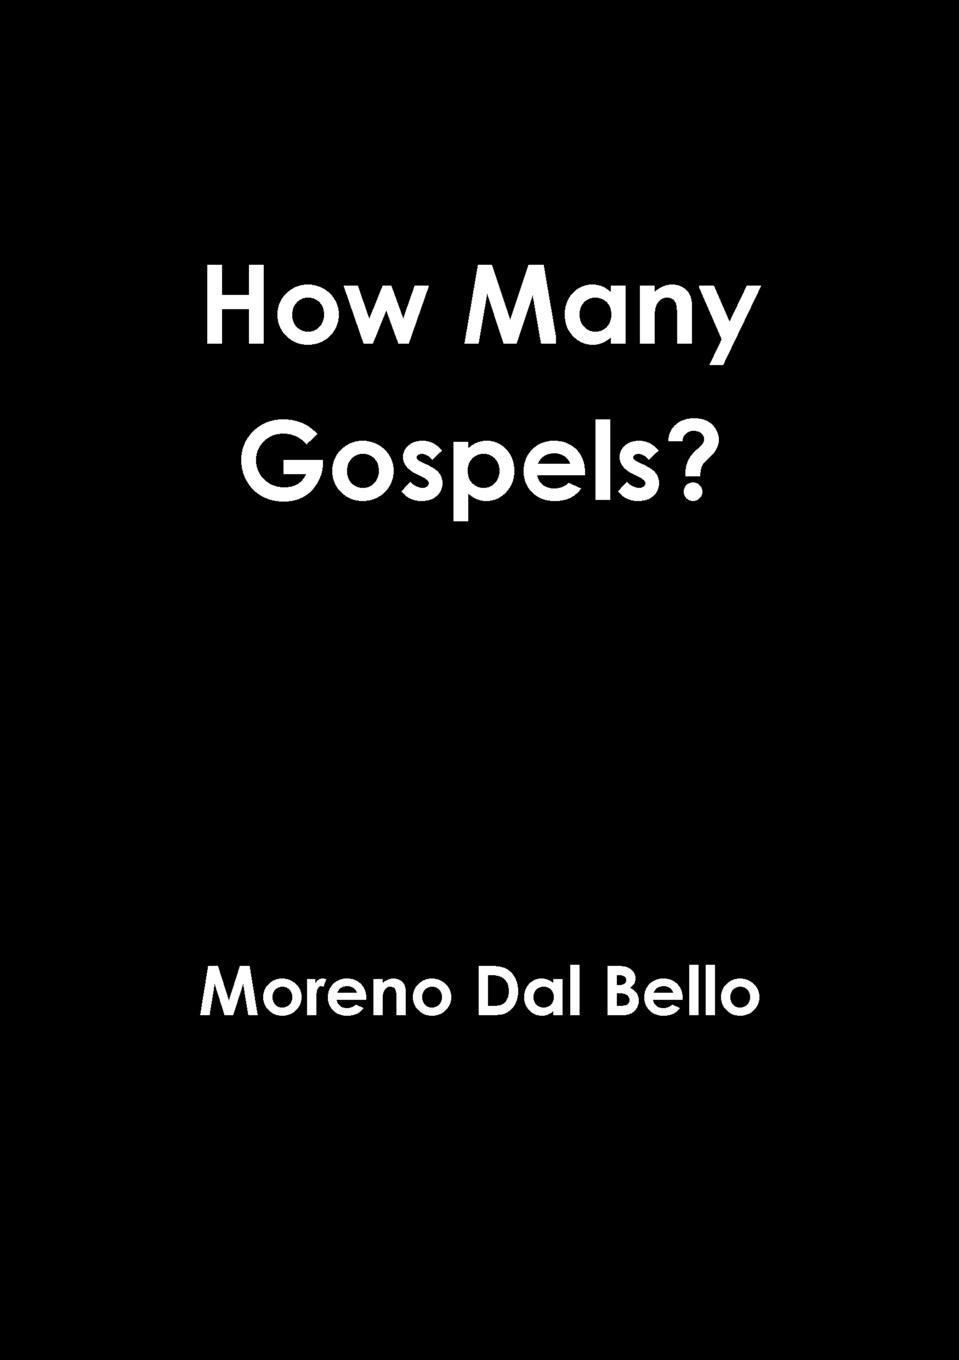 Moreno Dal Bello How Many Gospels. moreno dal bello not willing that any should perish